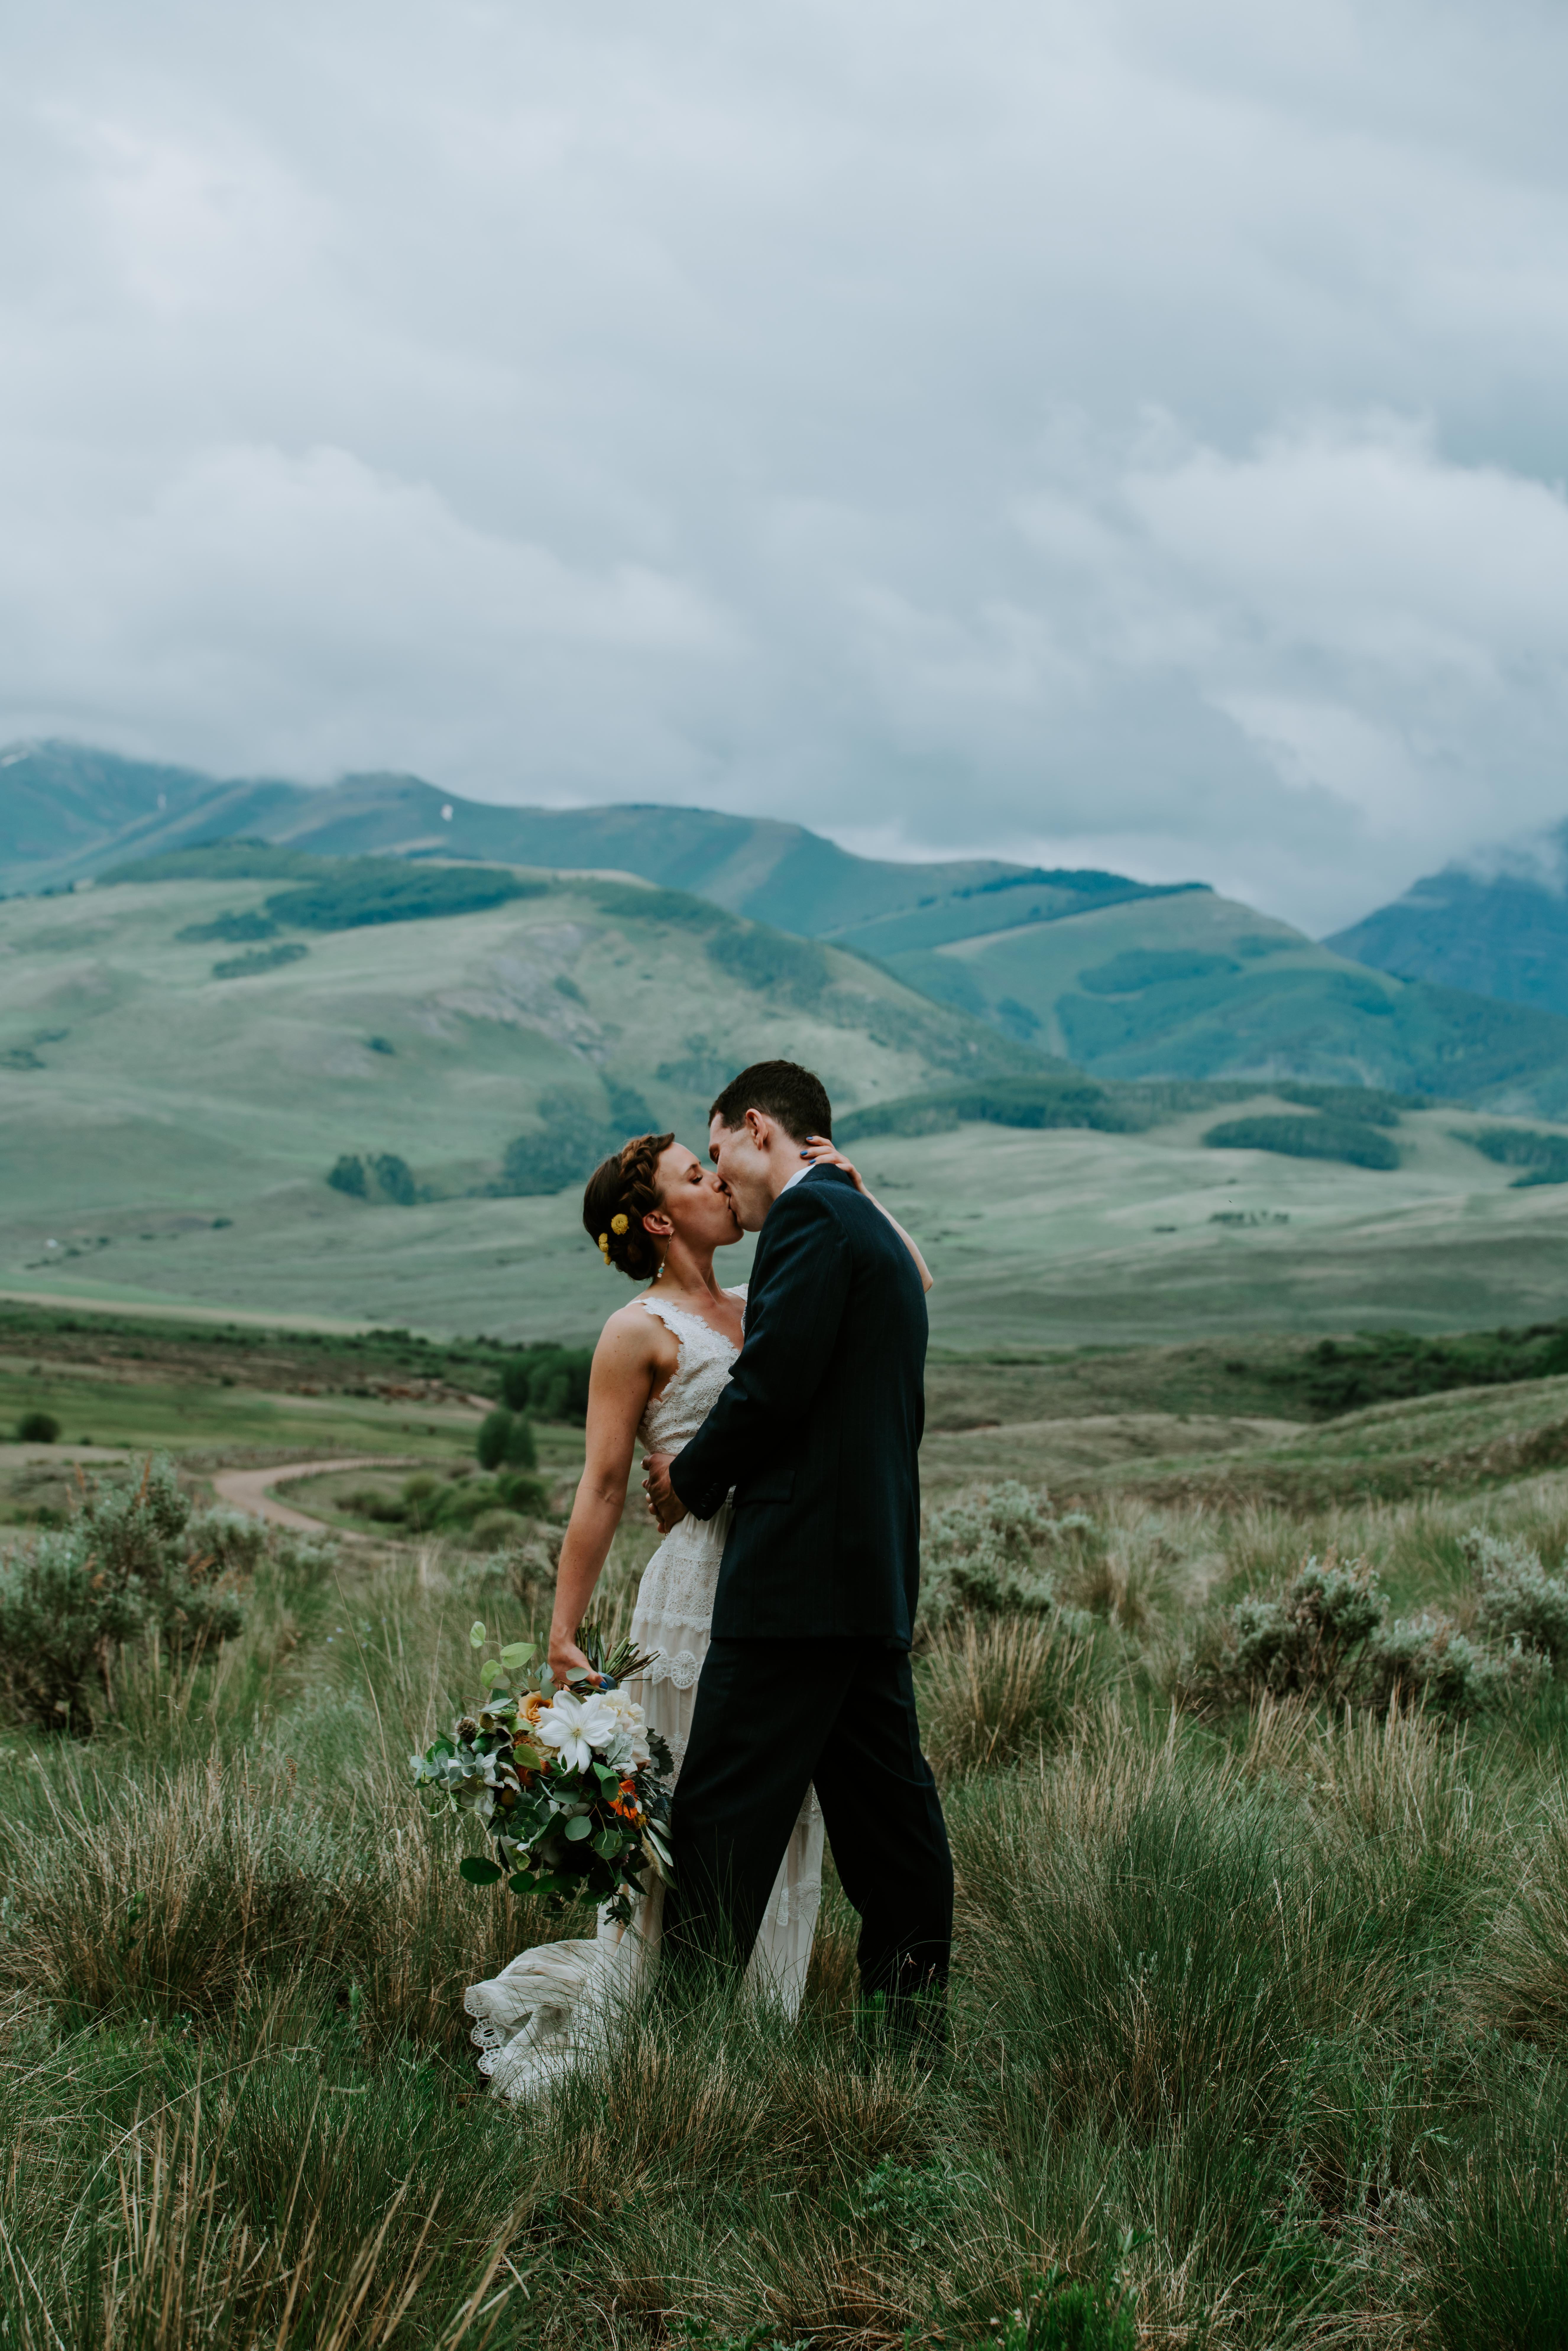 Laura_Alexe_Wedding_Crested_Butte_MegONeillPhotography__180616_39